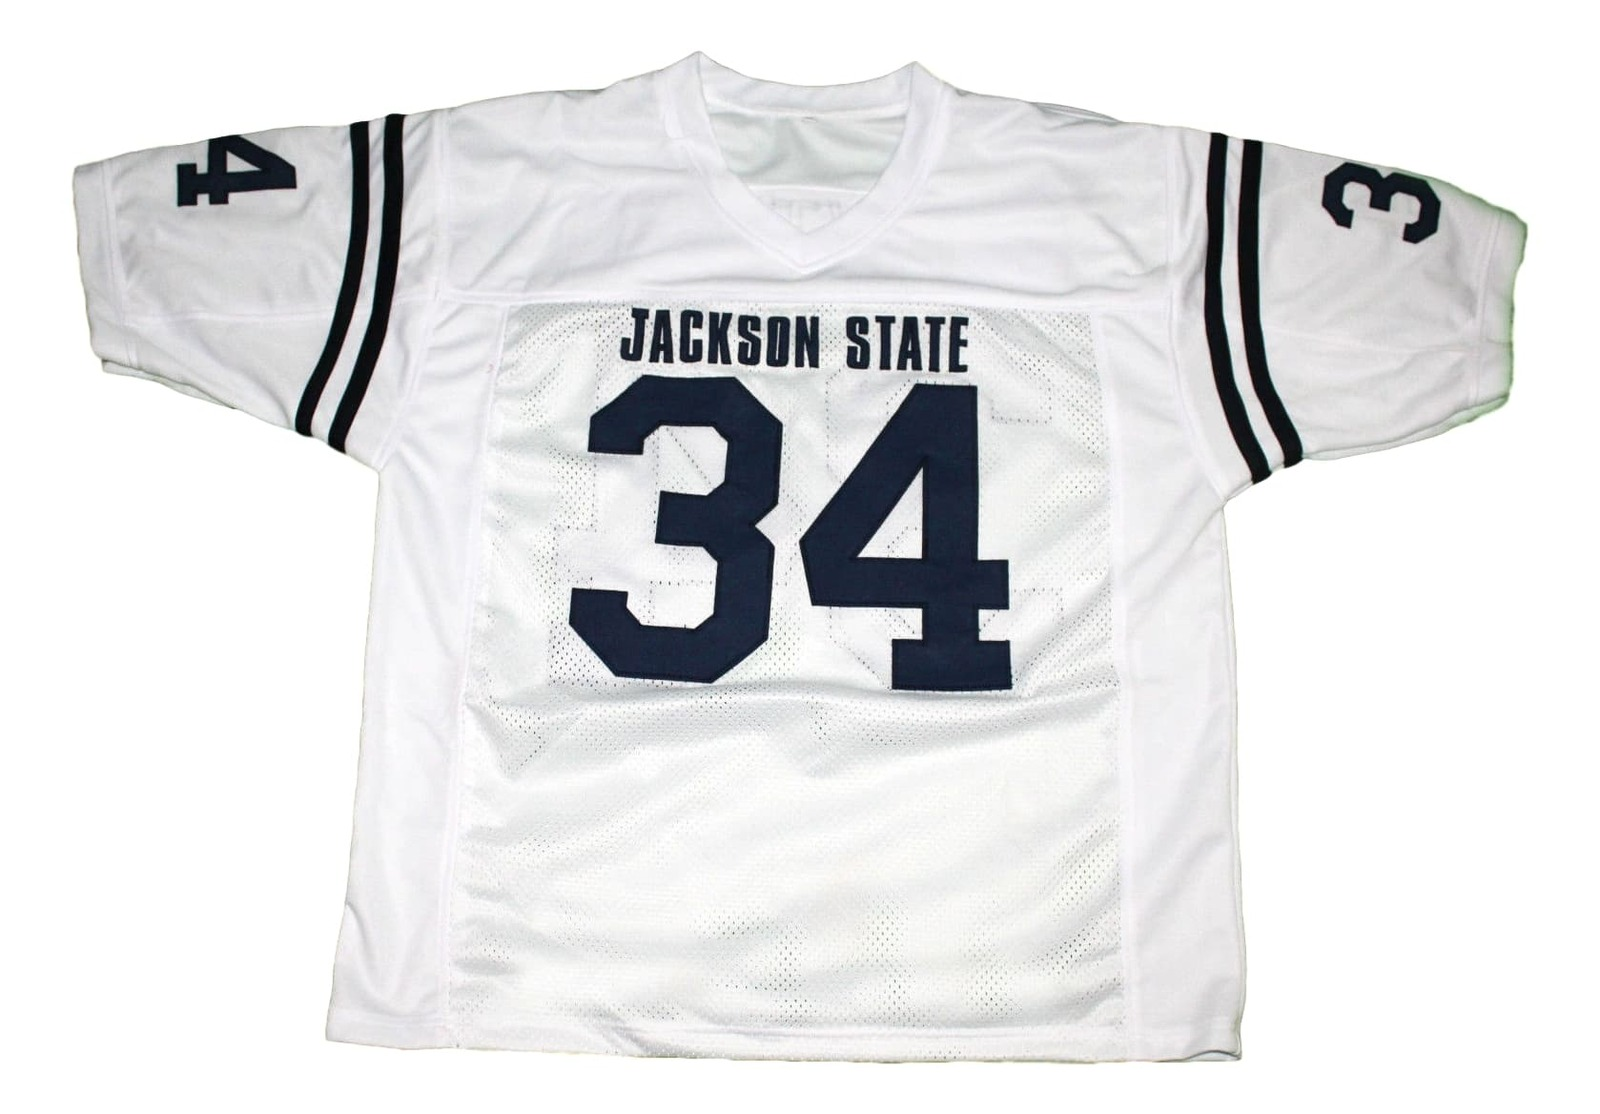 Walter Payton #34 Jackson State New Men Football Jersey White Any Size